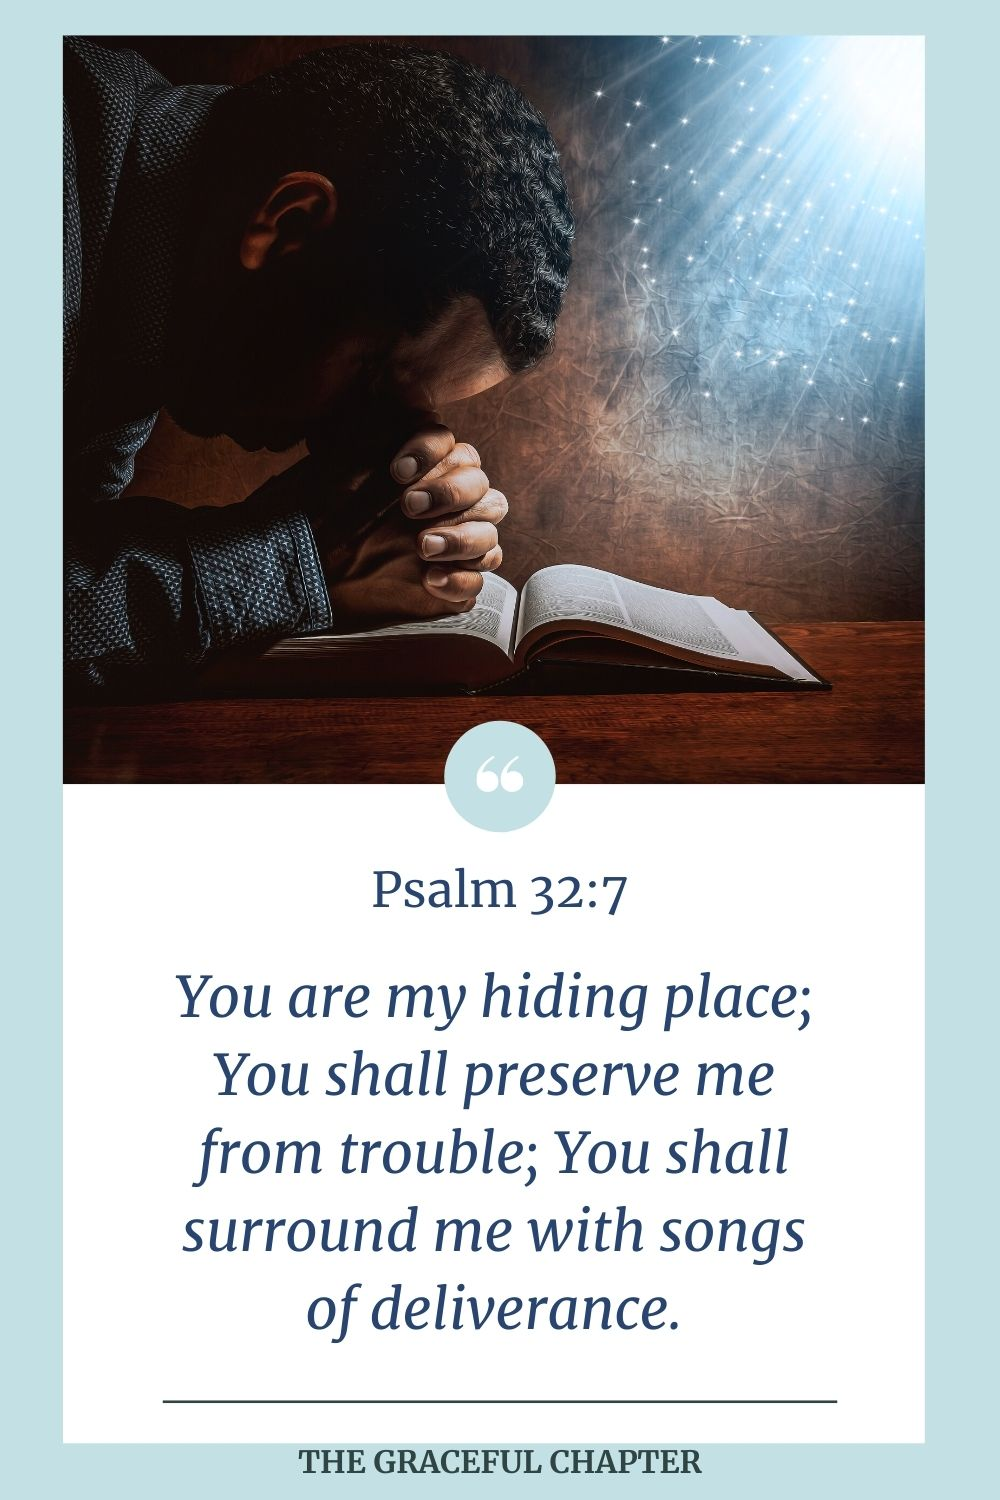 You are my hiding place; You shall preserve me from trouble; You shall surround me with songs of deliverance. Psalm 32:7